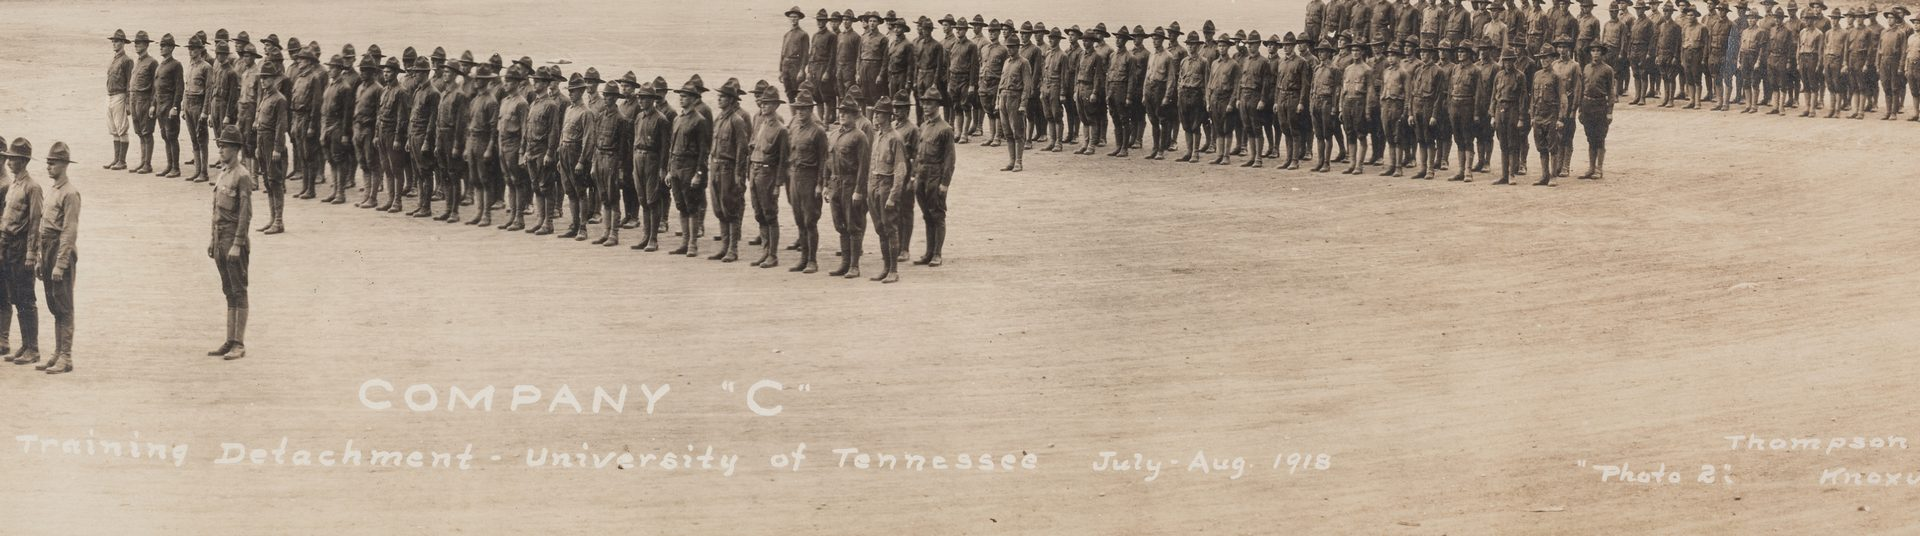 Lot 531: Company C Photo and WWI Poster, 2 items